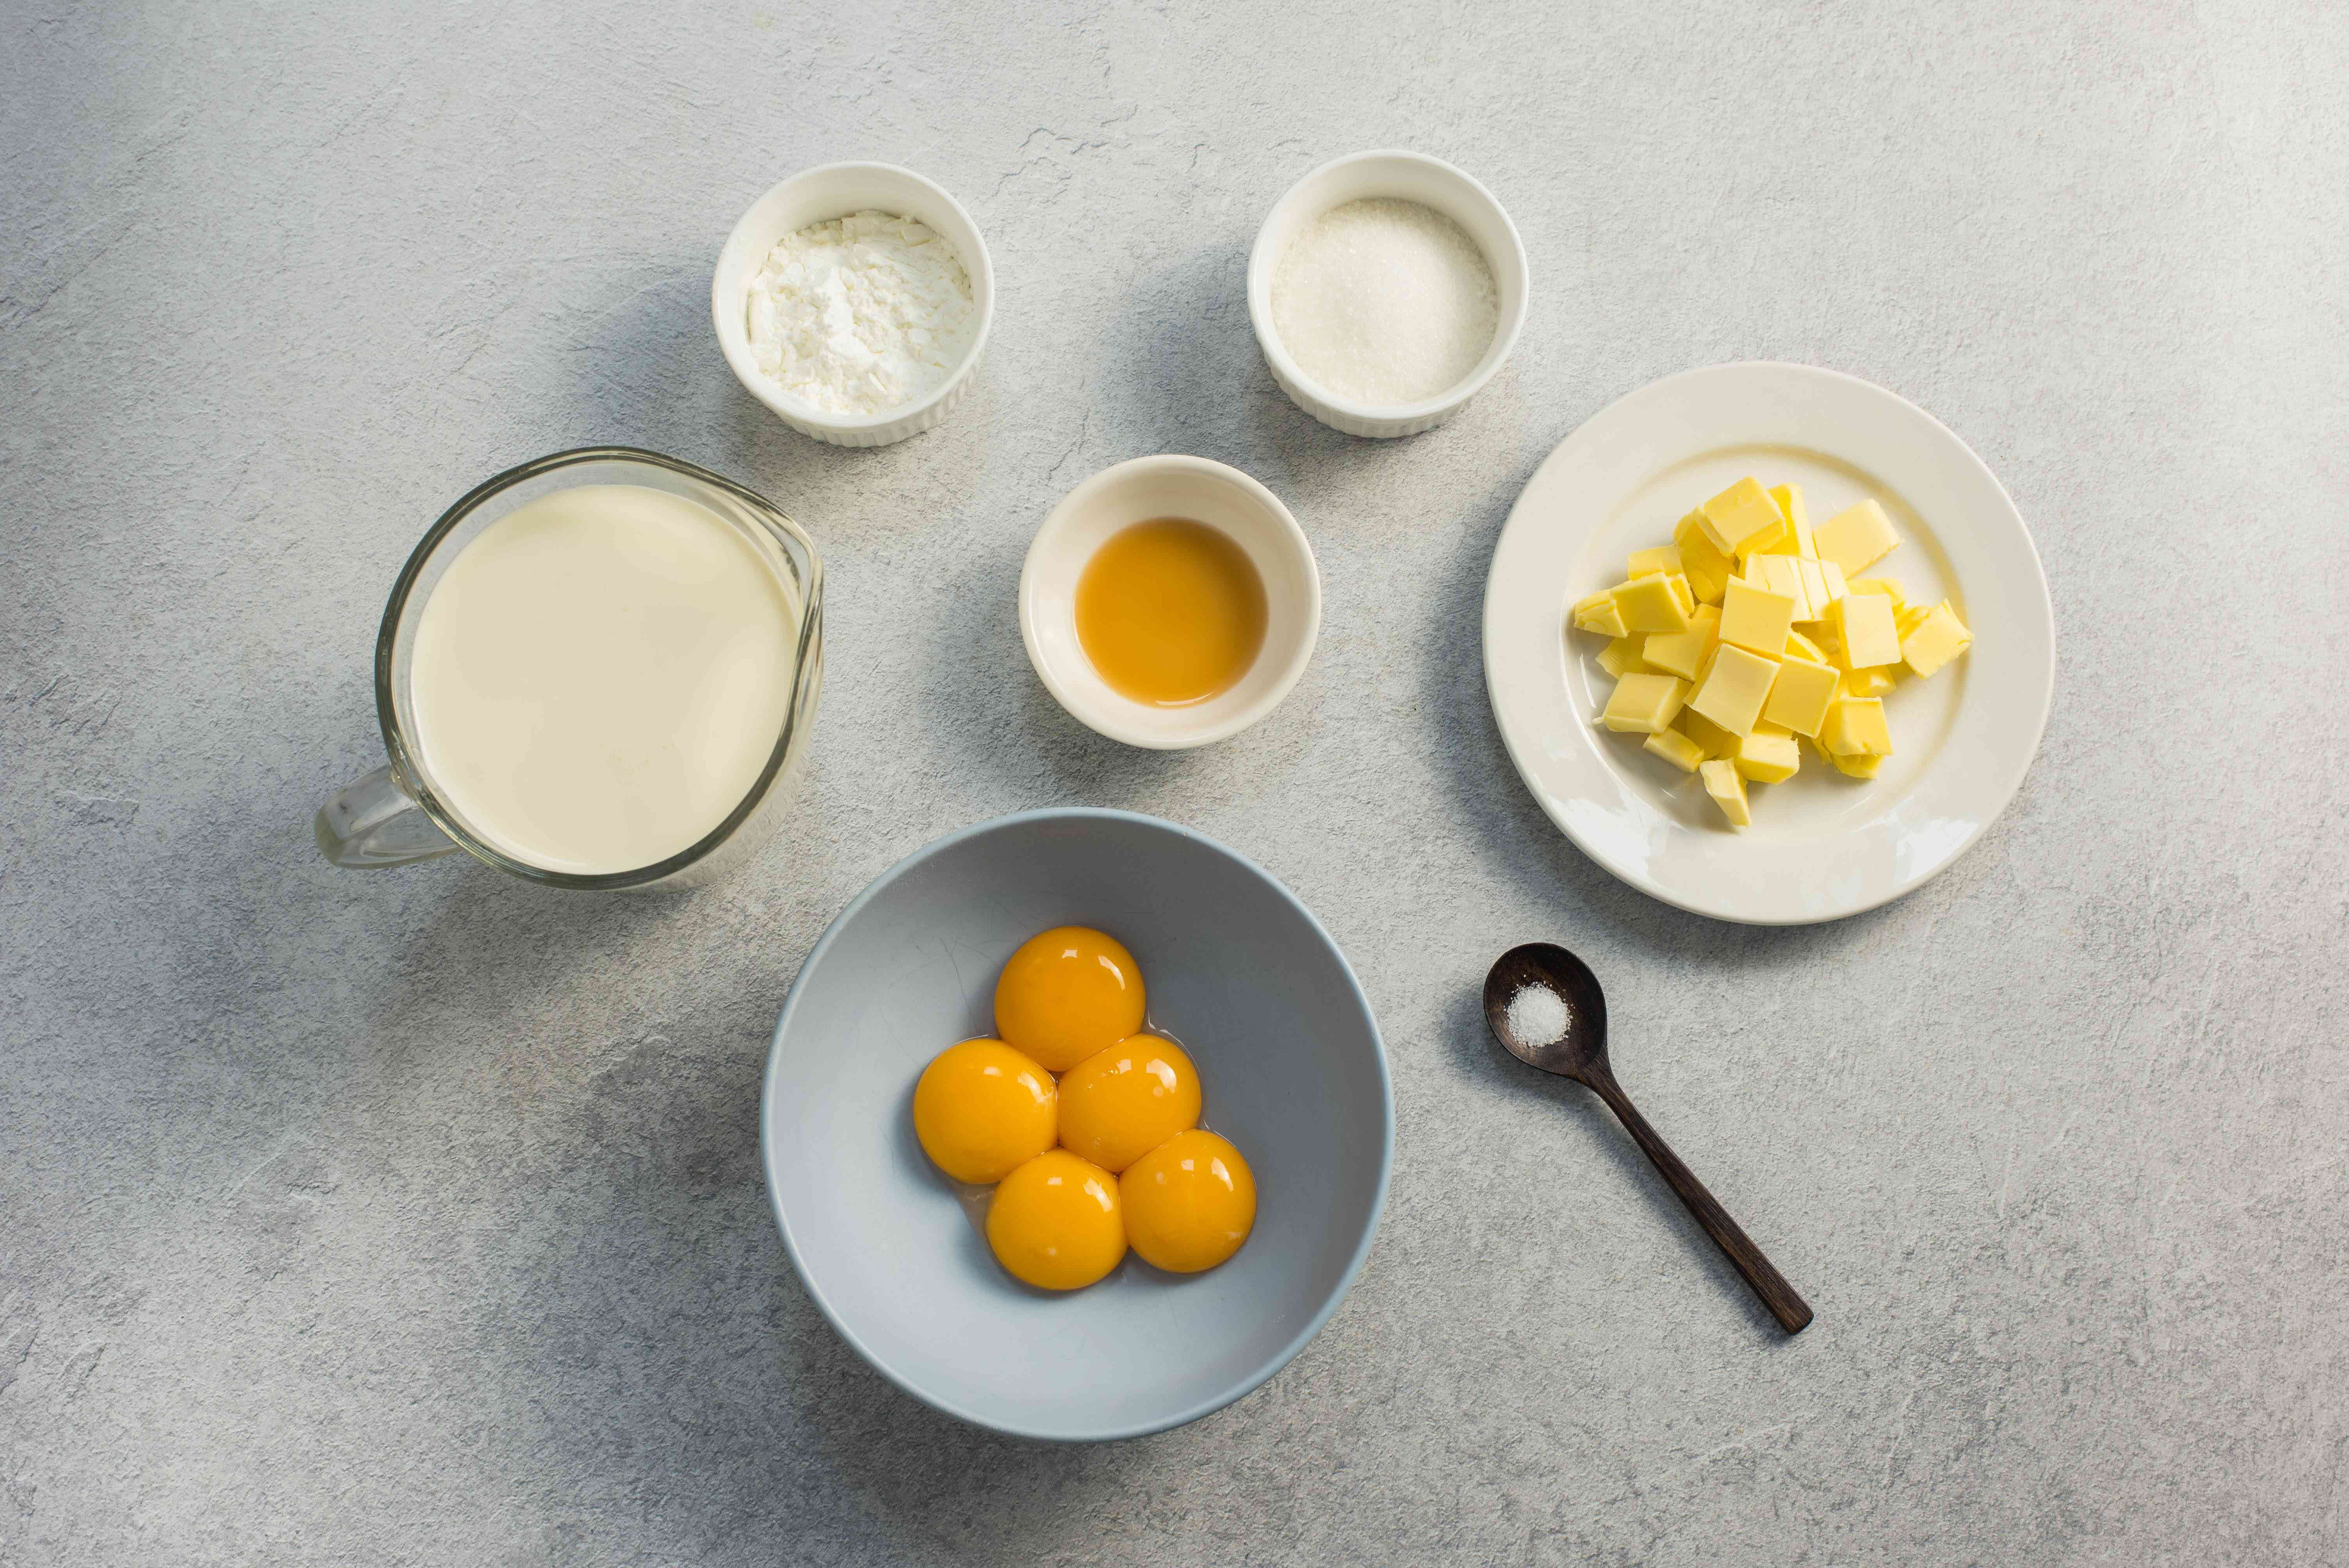 Ingredients for pastry cream